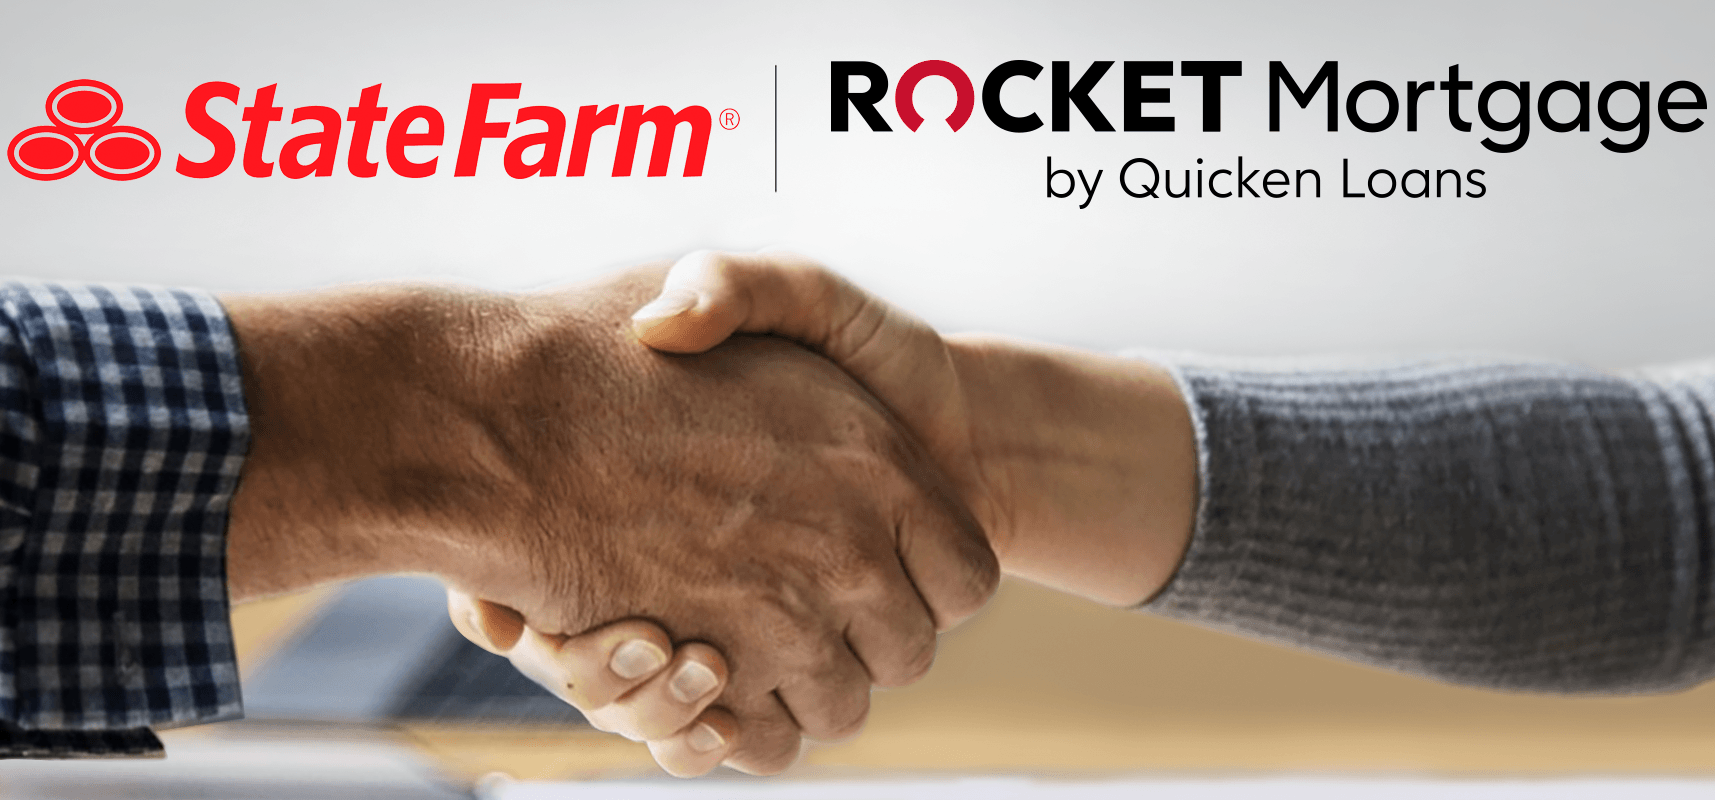 State Farm Announces Alliance With Rocket Mortgage